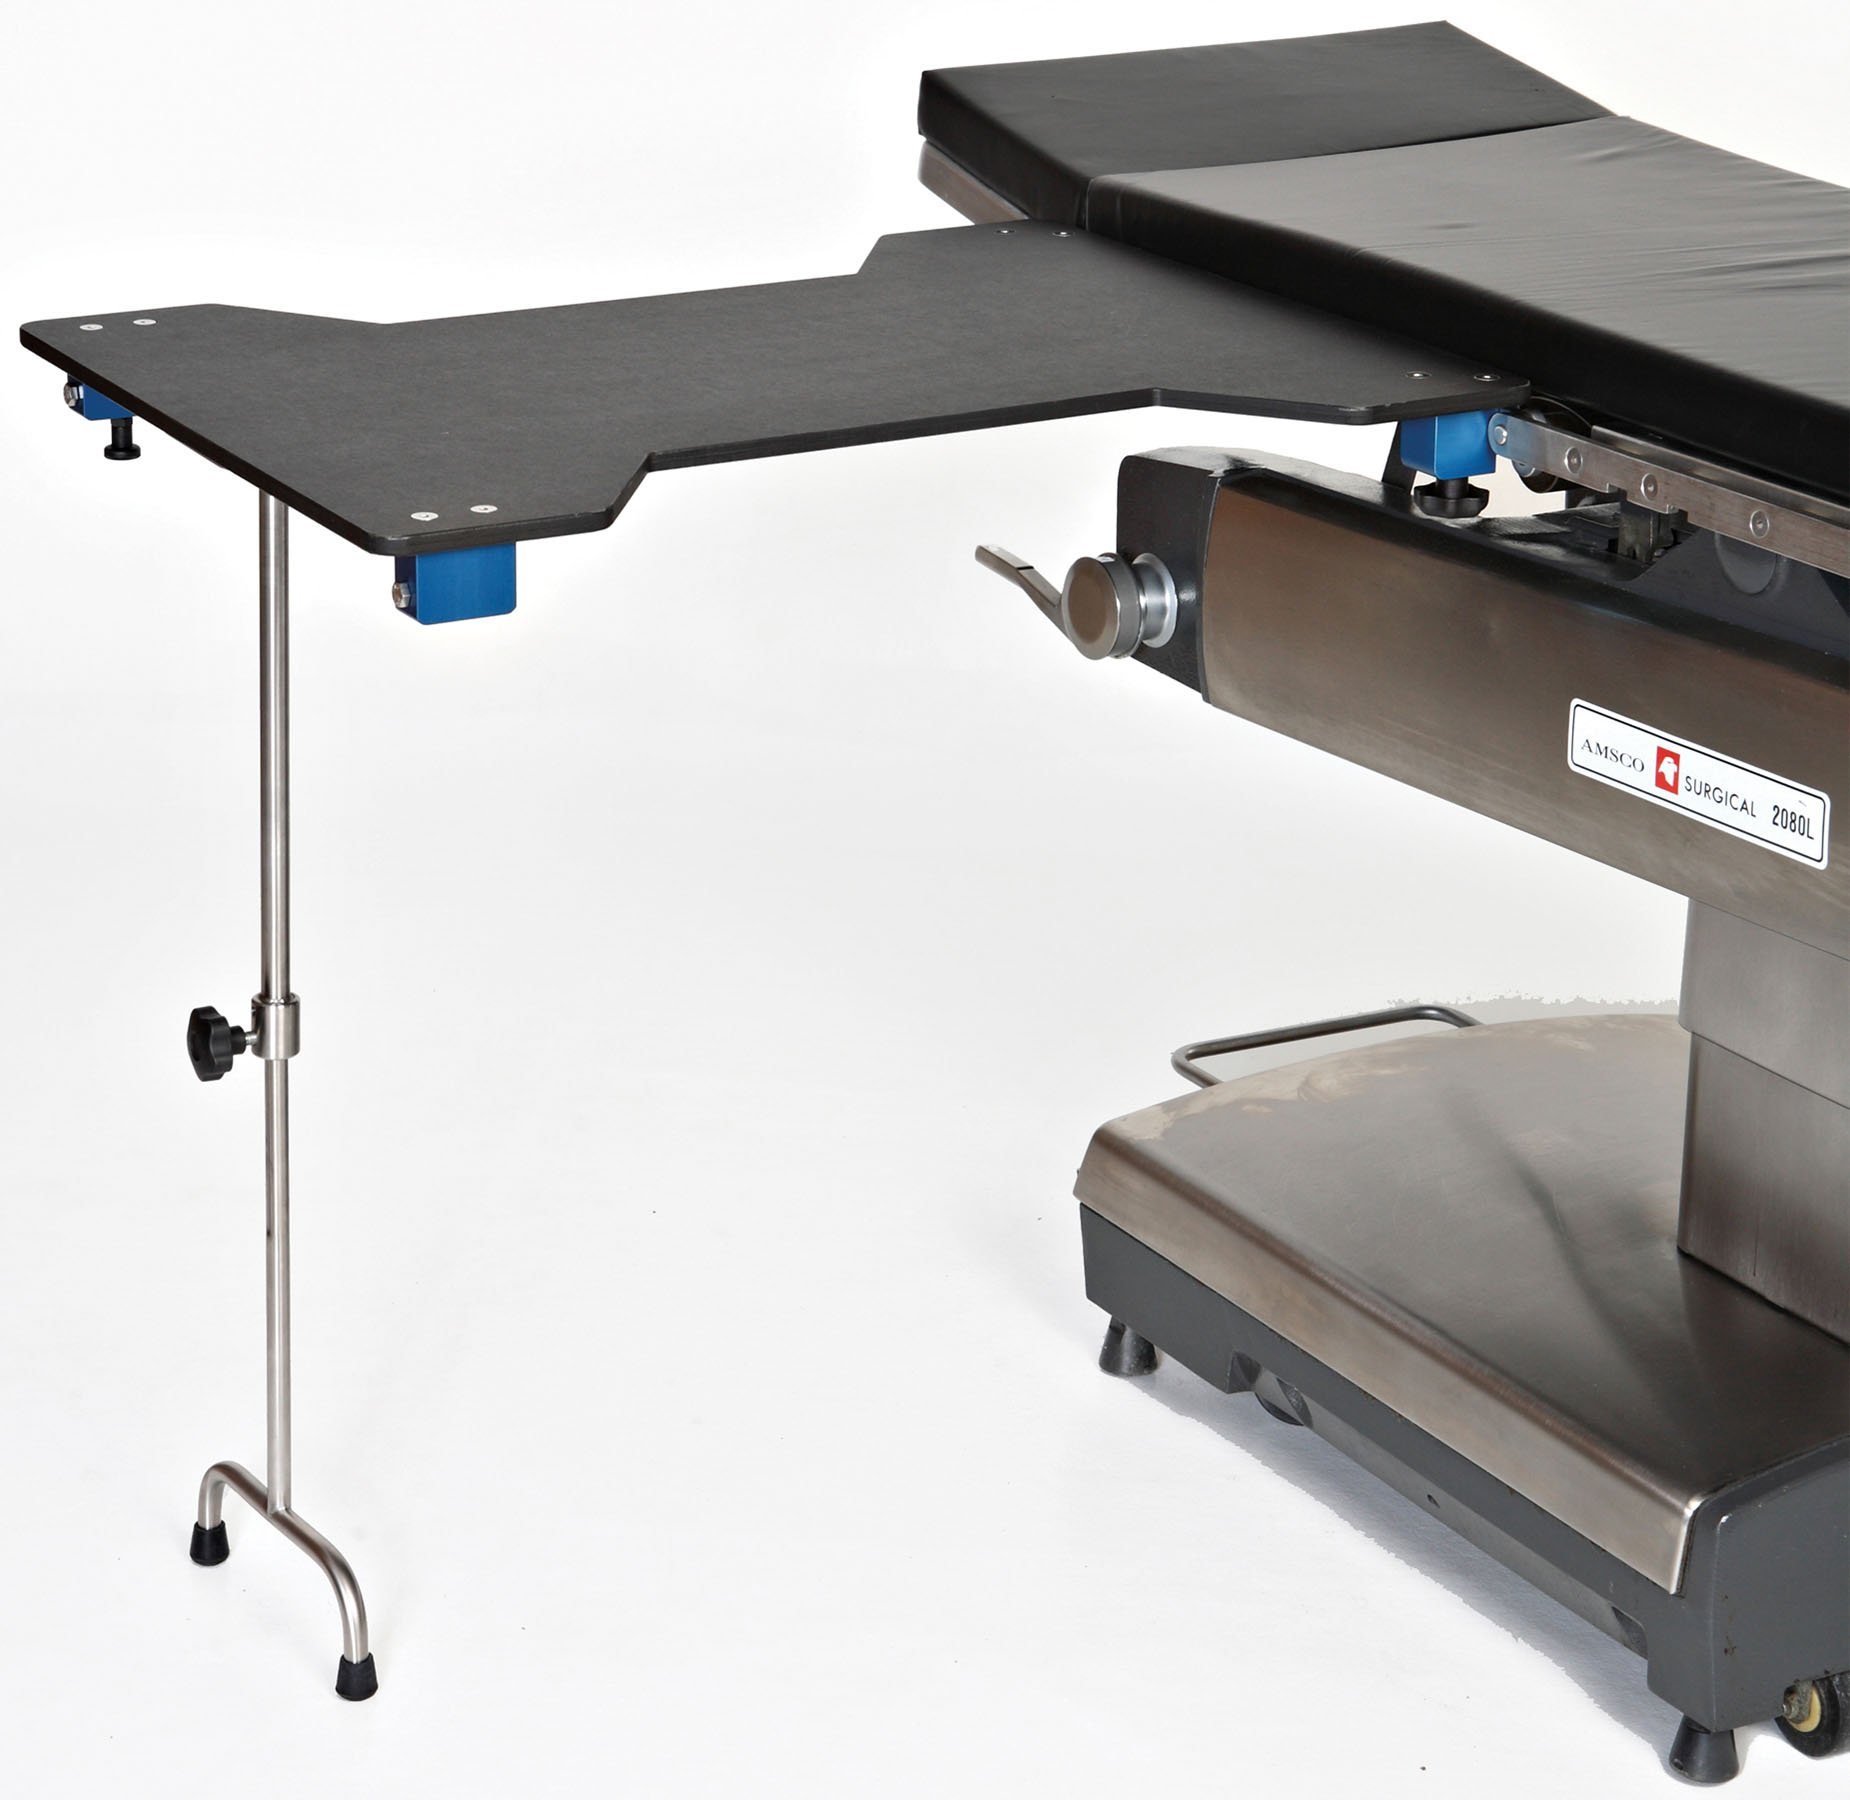 Hourglass Carbon Fiber Arm & Hand Surgery Table with Tee Foot Leg (BACKORDER UNTIL 10/01/2021)